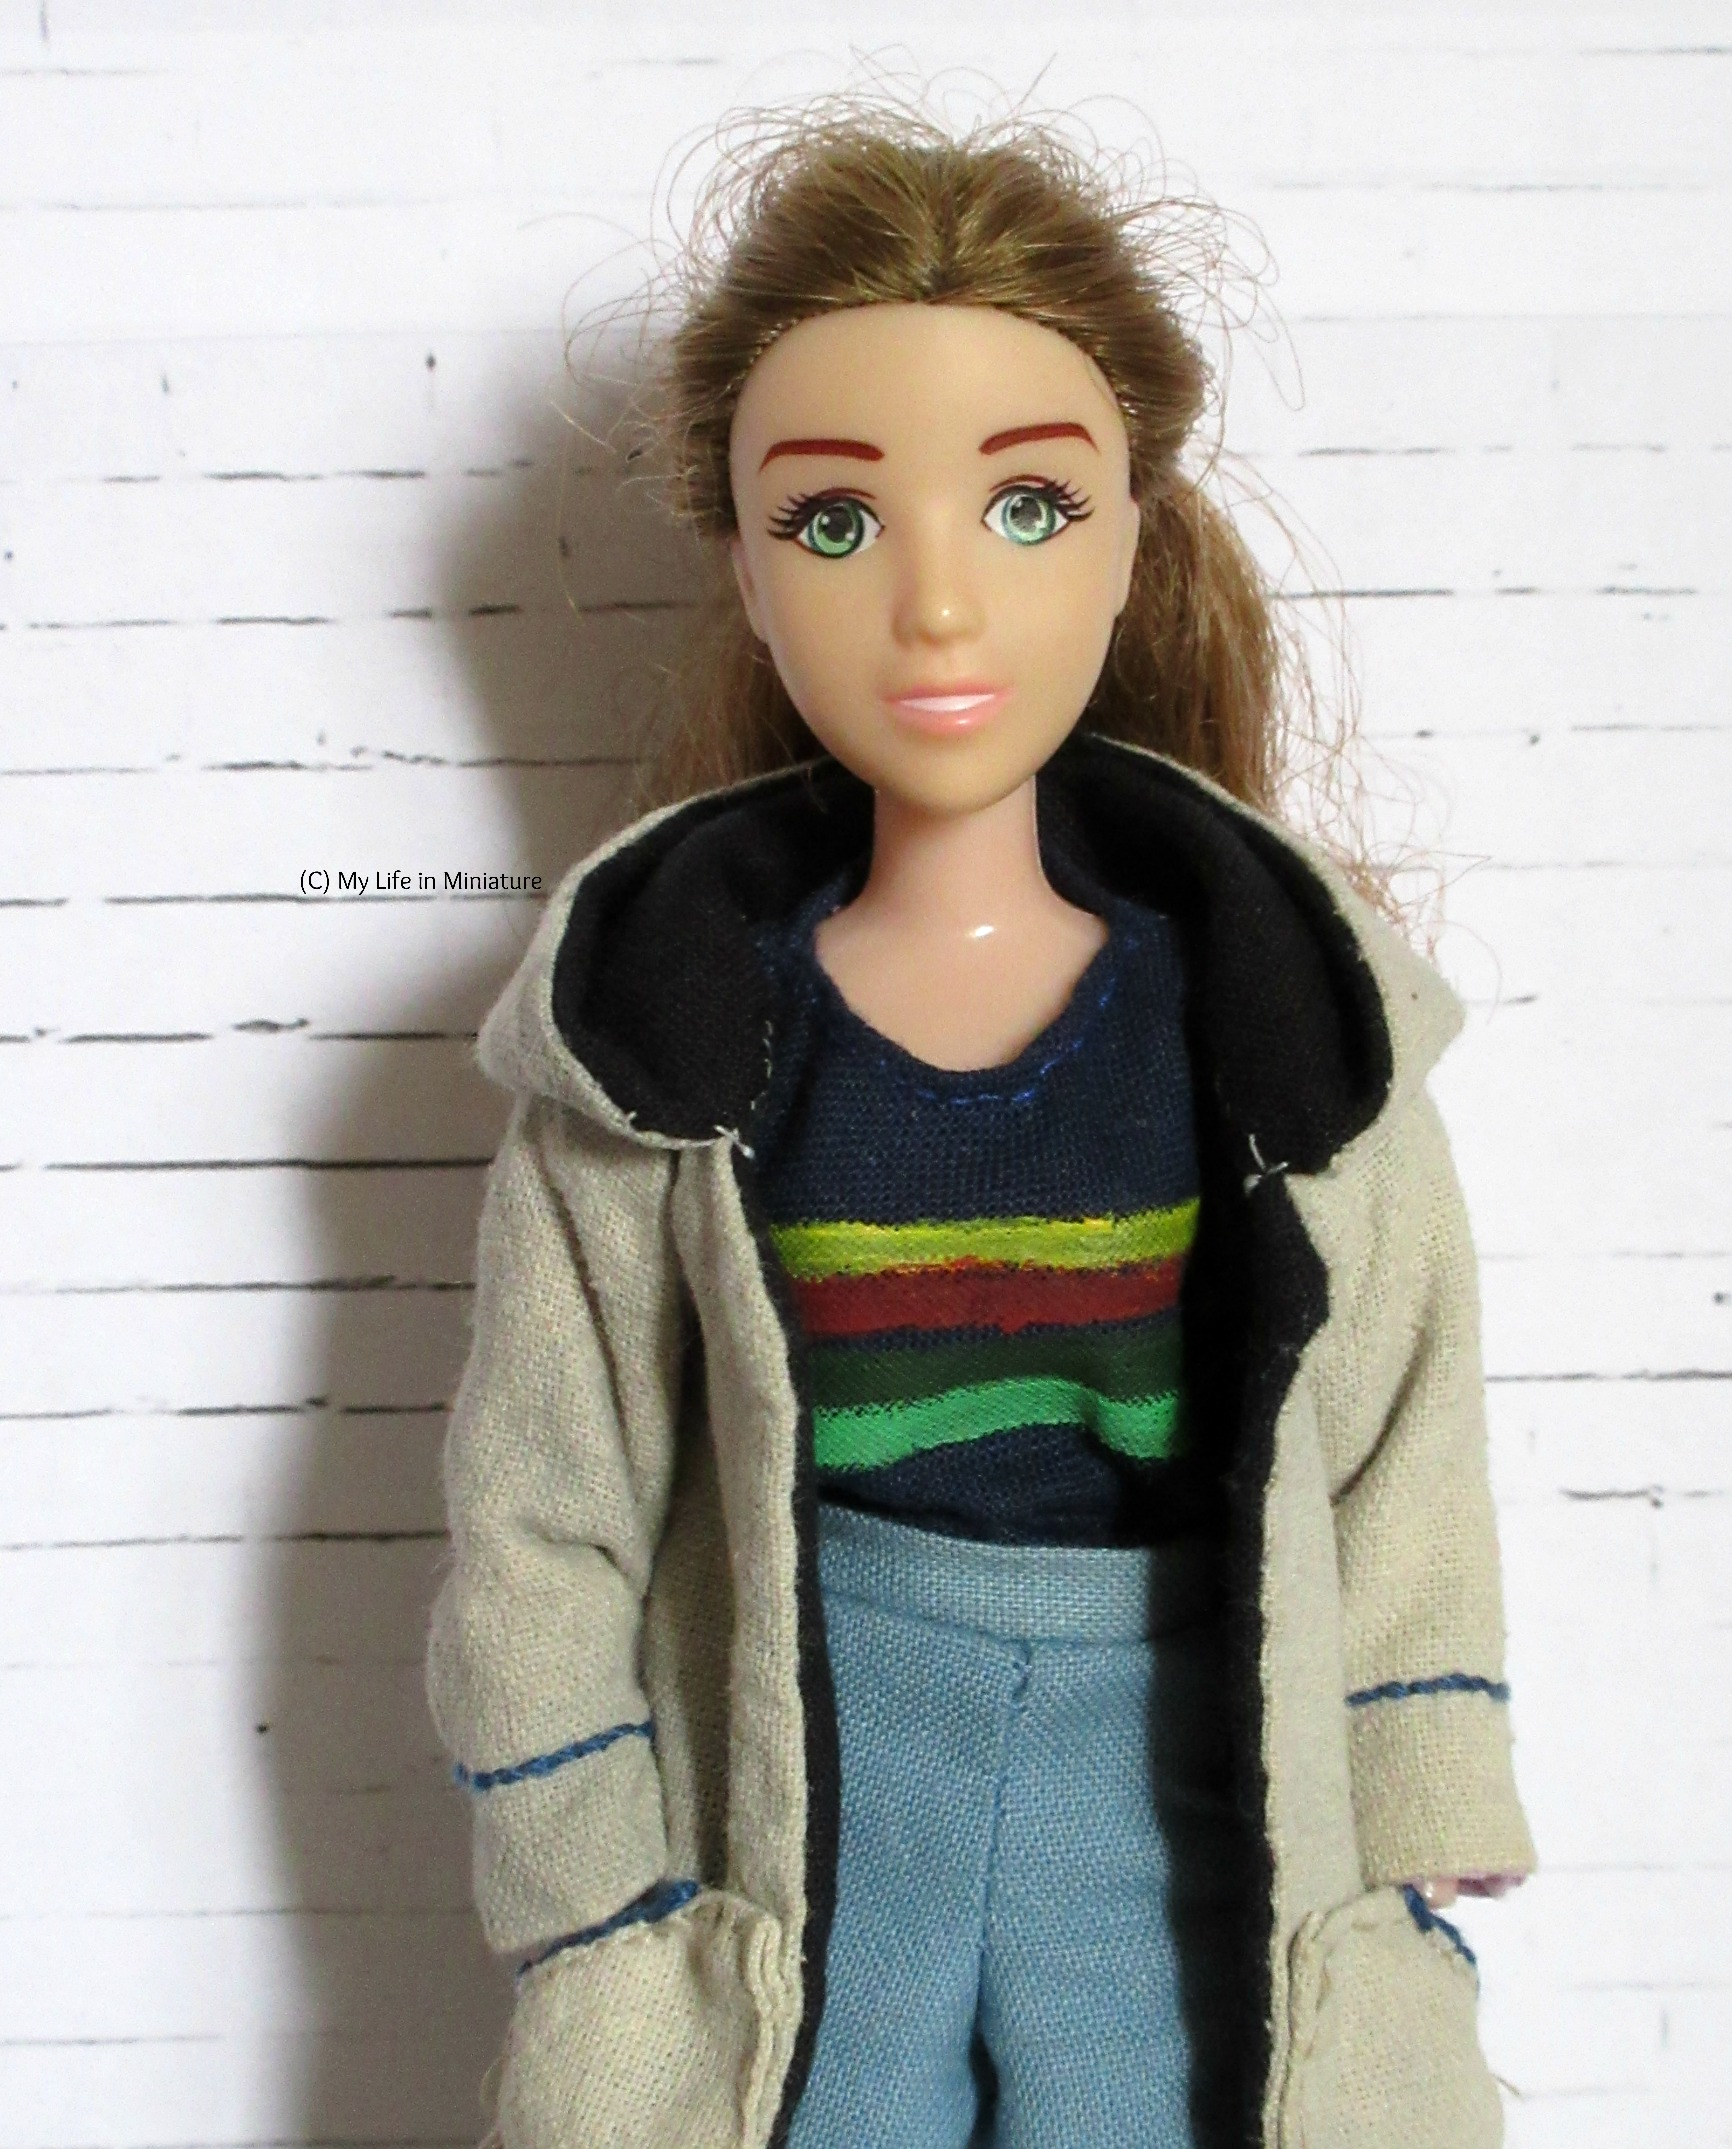 Sarah looks at the camera wearing Thirteenth Doctor cosplay. Her hands are in her pockets and she is against a white background.